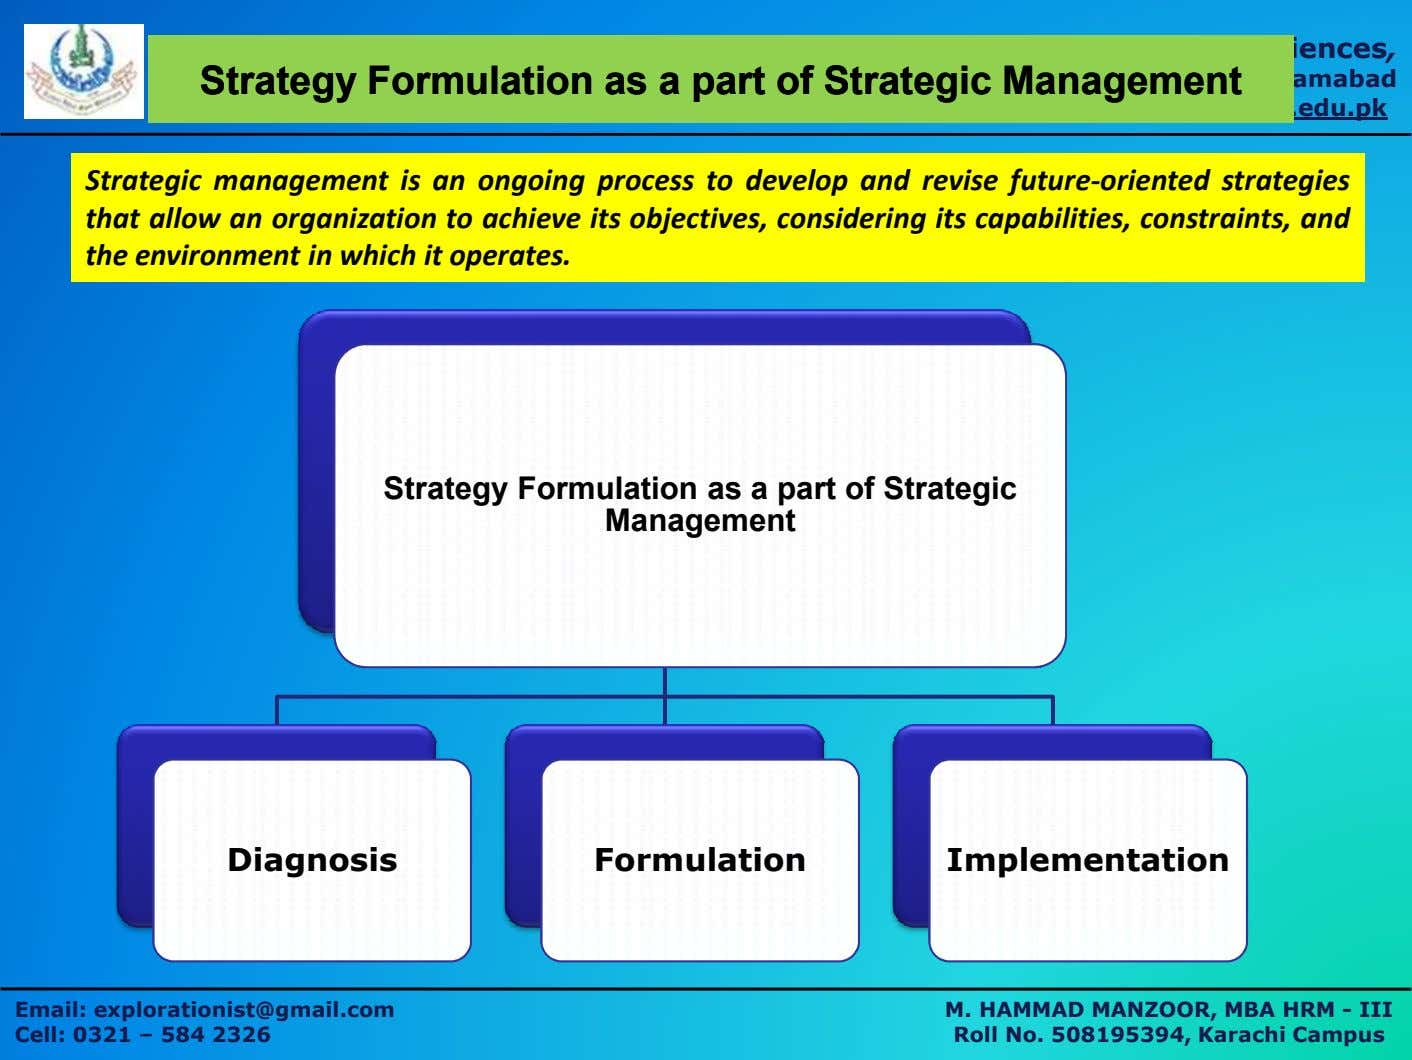 Department of Admin Sciences, StrategyStrategy FormulationFormulation asas aa partpart ofof StrategicStrategic